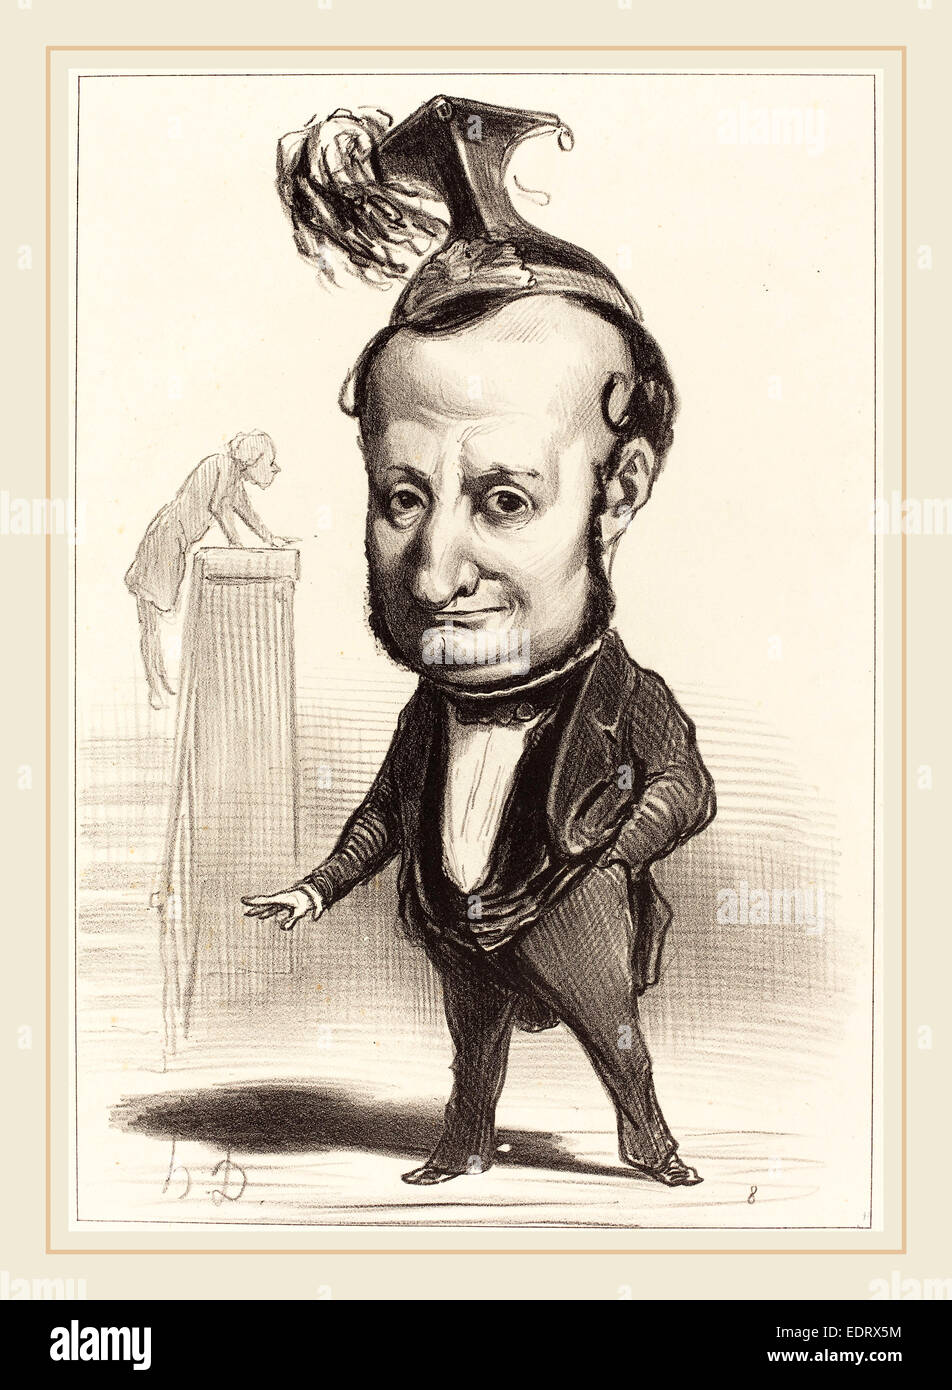 Honoré Daumier (French, 1808-1879), L.F. Raymond Wolowski, 1849, lithograph - Stock Image